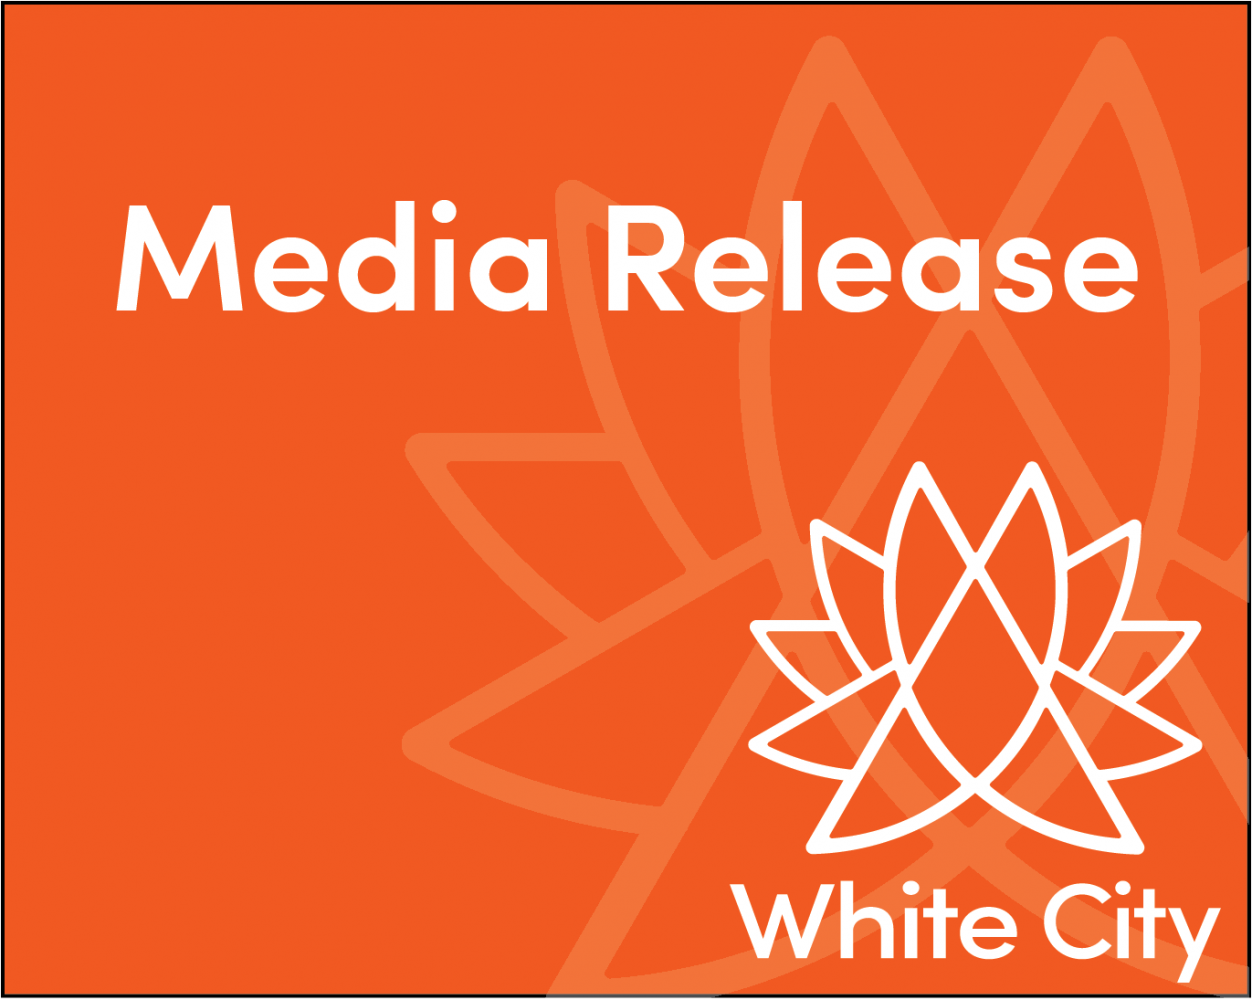 Joint Release from Town of White City and RM of Edenwold